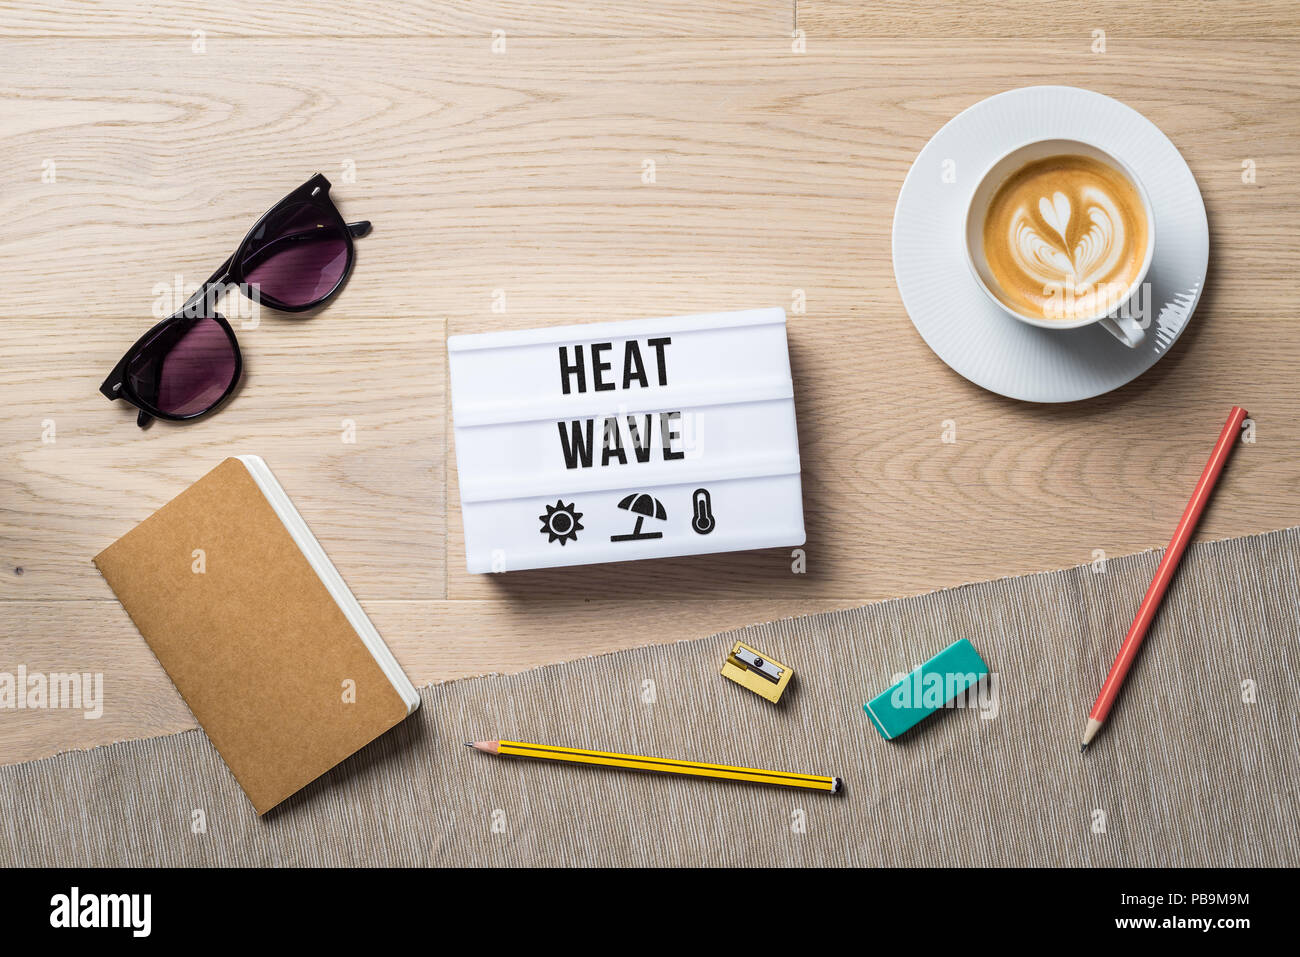 Heat wave written on light box with sun and thermometer icons as flatlay from above of an office desk background with notebook - Stock Image